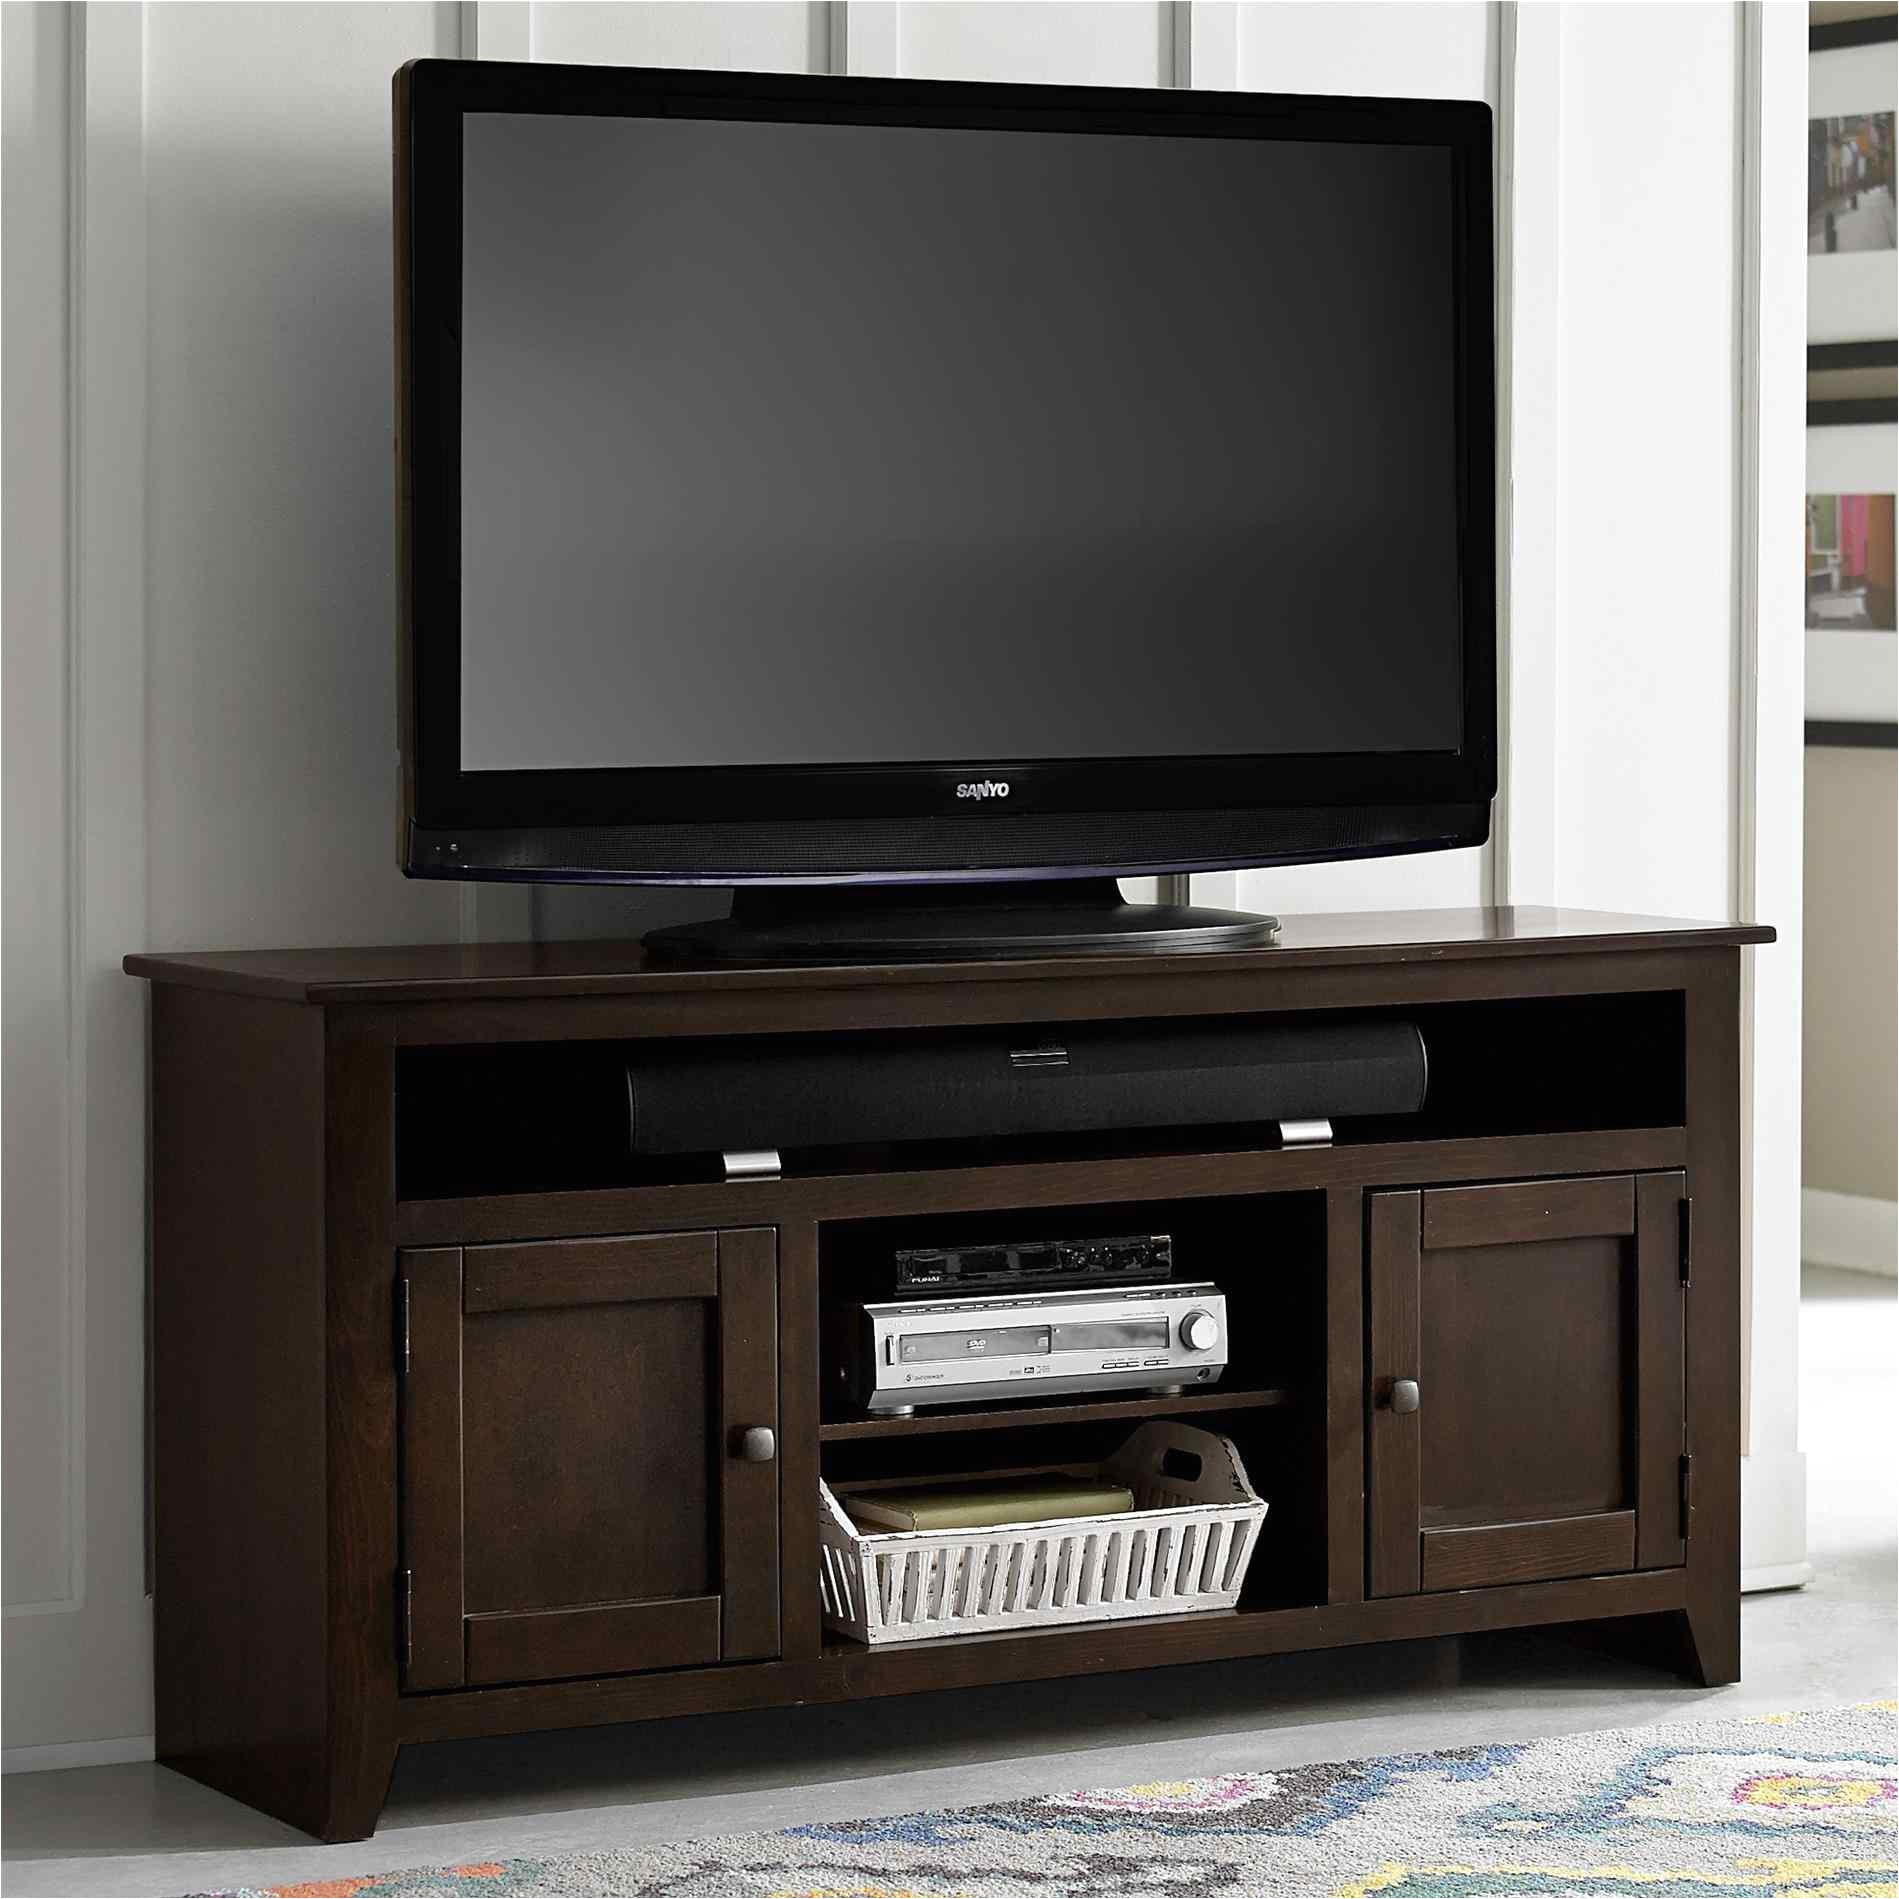 Tv Stands at American Furniture Warehouse the Images Collection Of Room Sets sofas and Sectionals